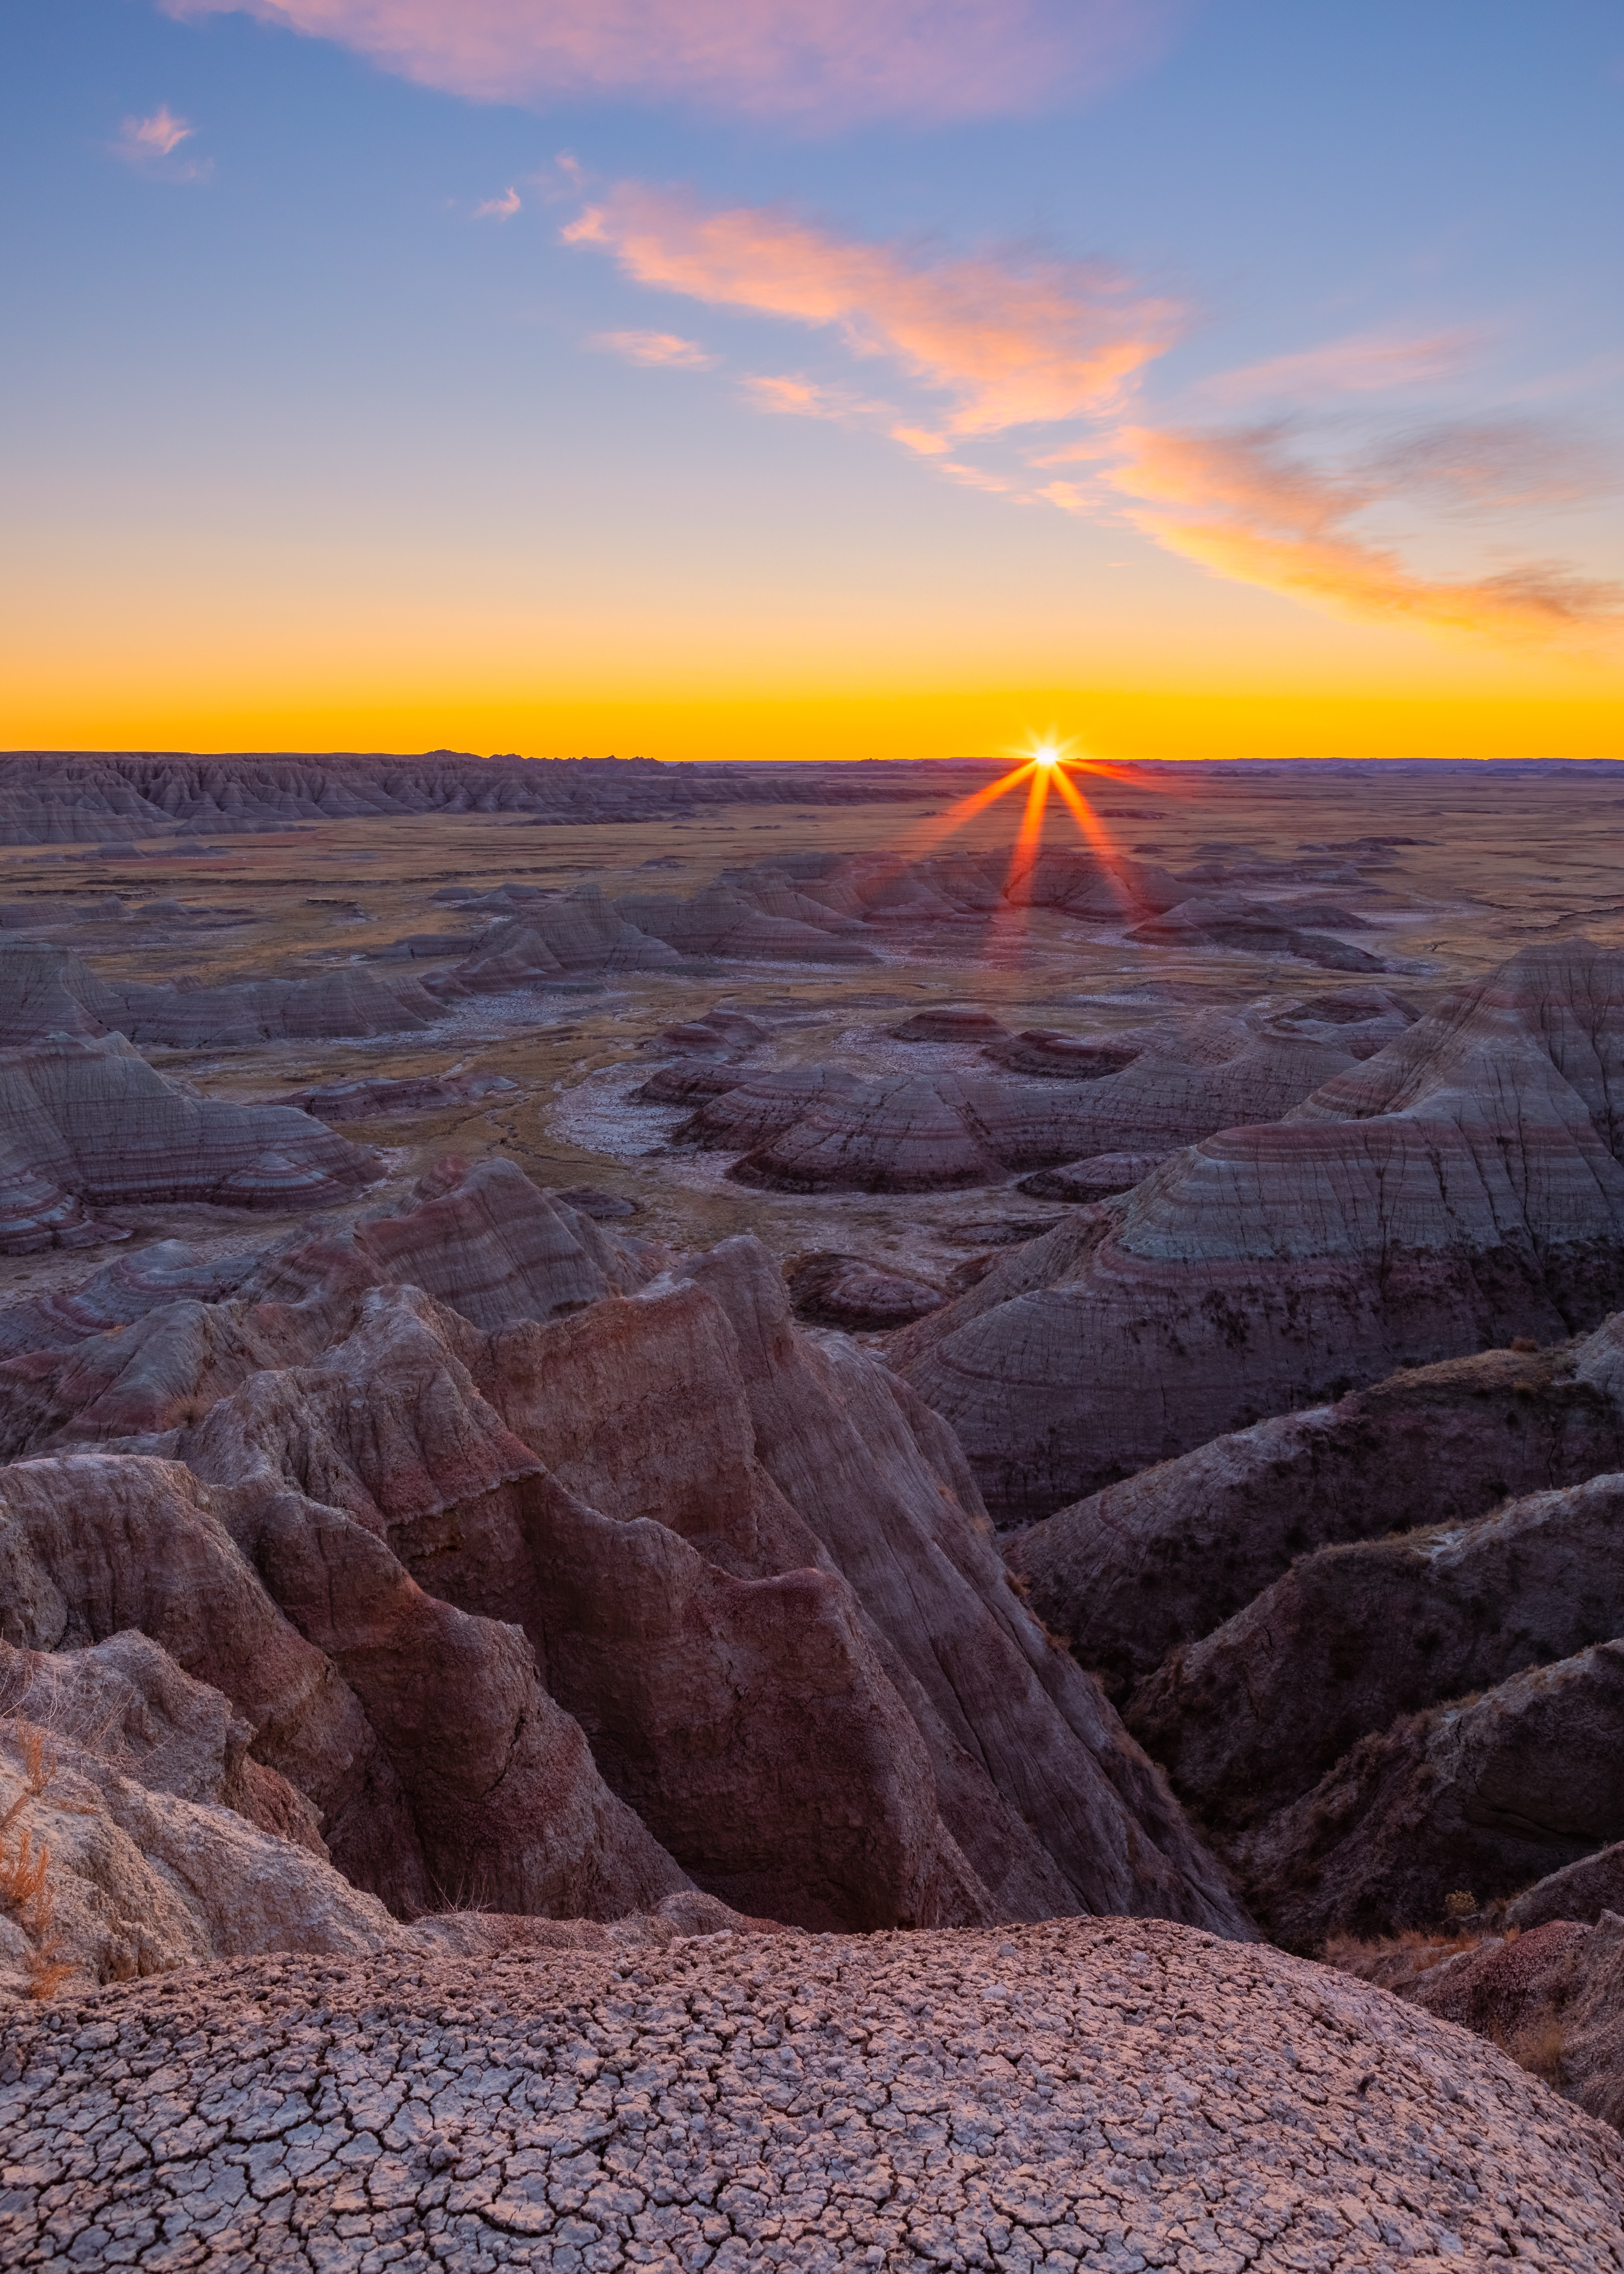 108862 download wallpaper Nature, Canyon, Rocks, Dry, Cracks, Crack, Sunset, Sun screensavers and pictures for free